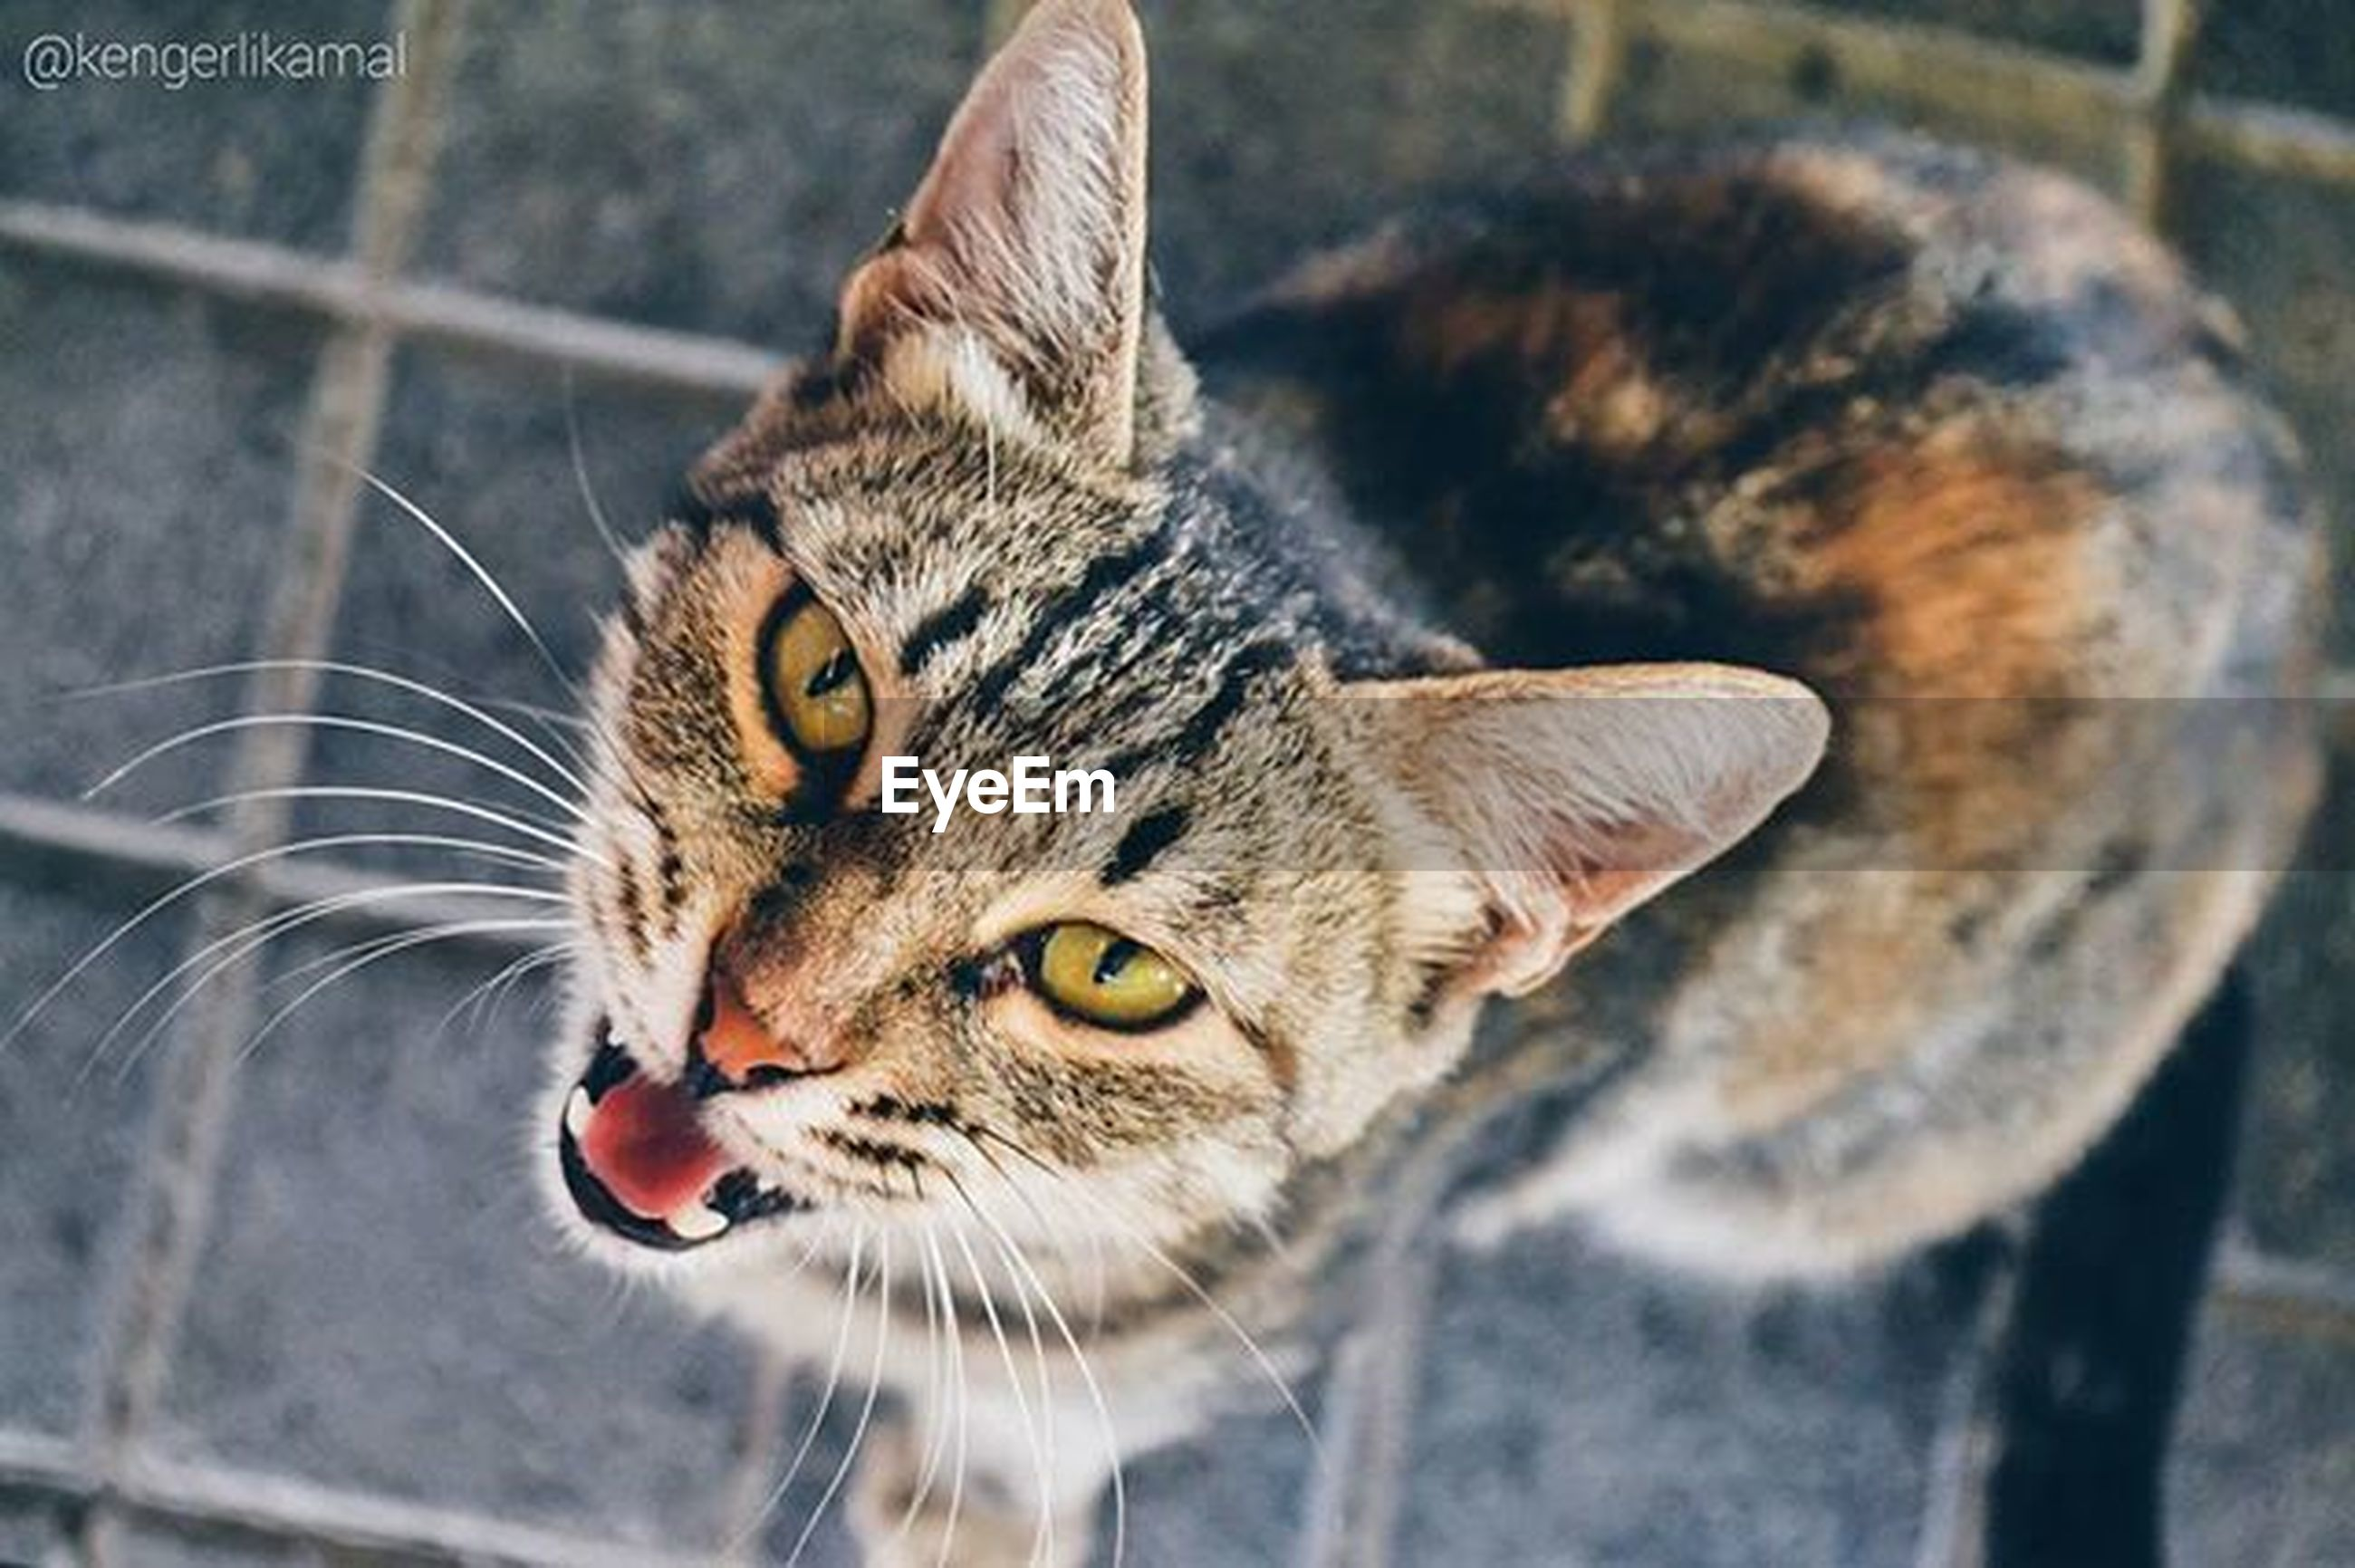 domestic cat, one animal, cat, animal themes, feline, pets, whisker, mammal, domestic animals, portrait, looking at camera, focus on foreground, close-up, animal head, staring, alertness, front view, animal eye, tabby